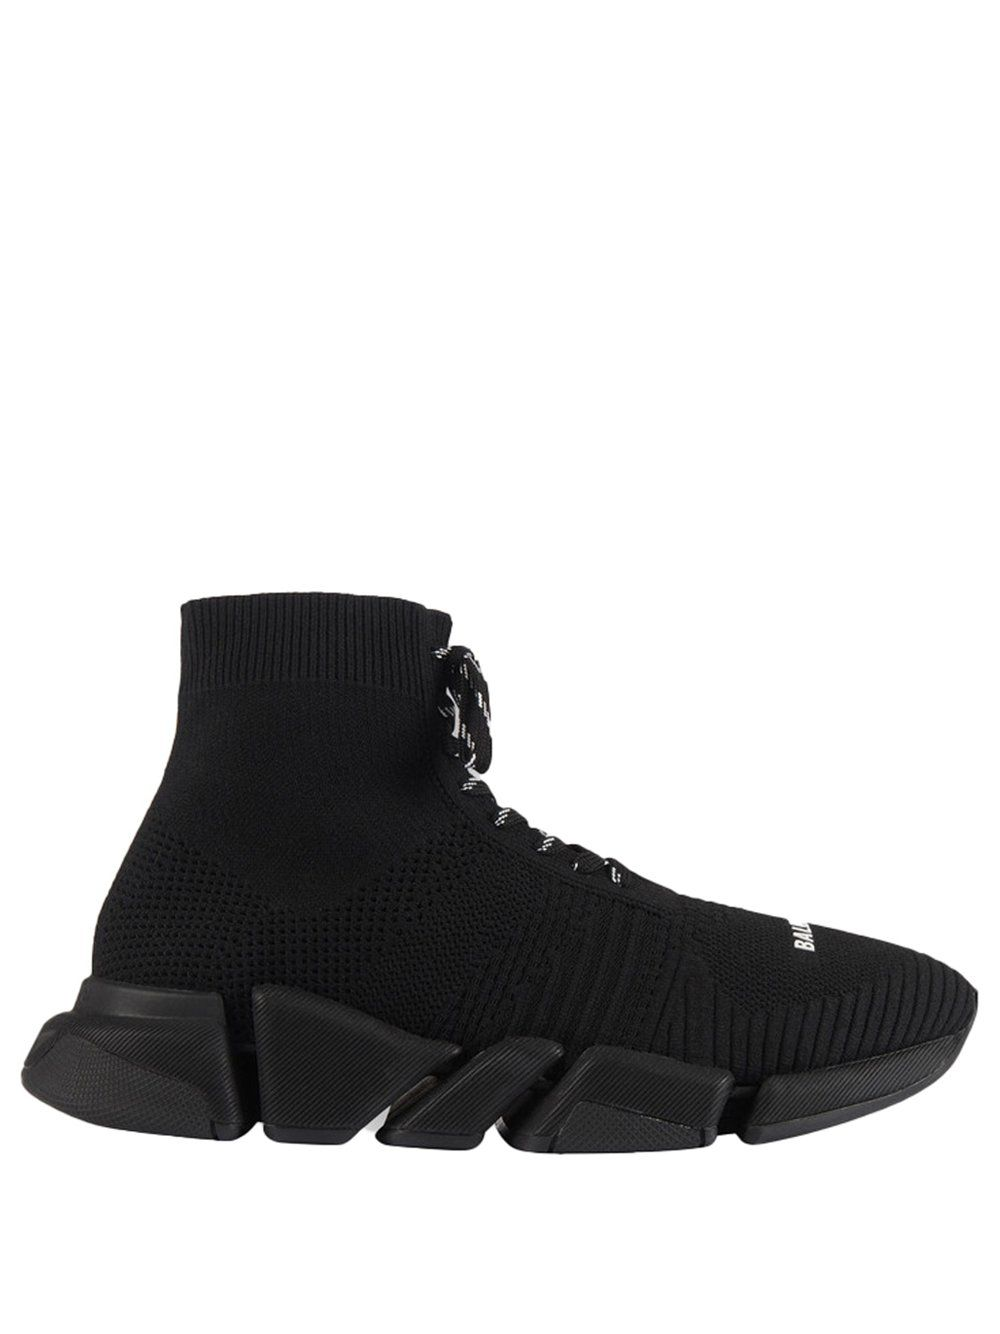 BALENCIAGA Speed 2.0 Lace-Up Sneaker Black - Maison De Fashion